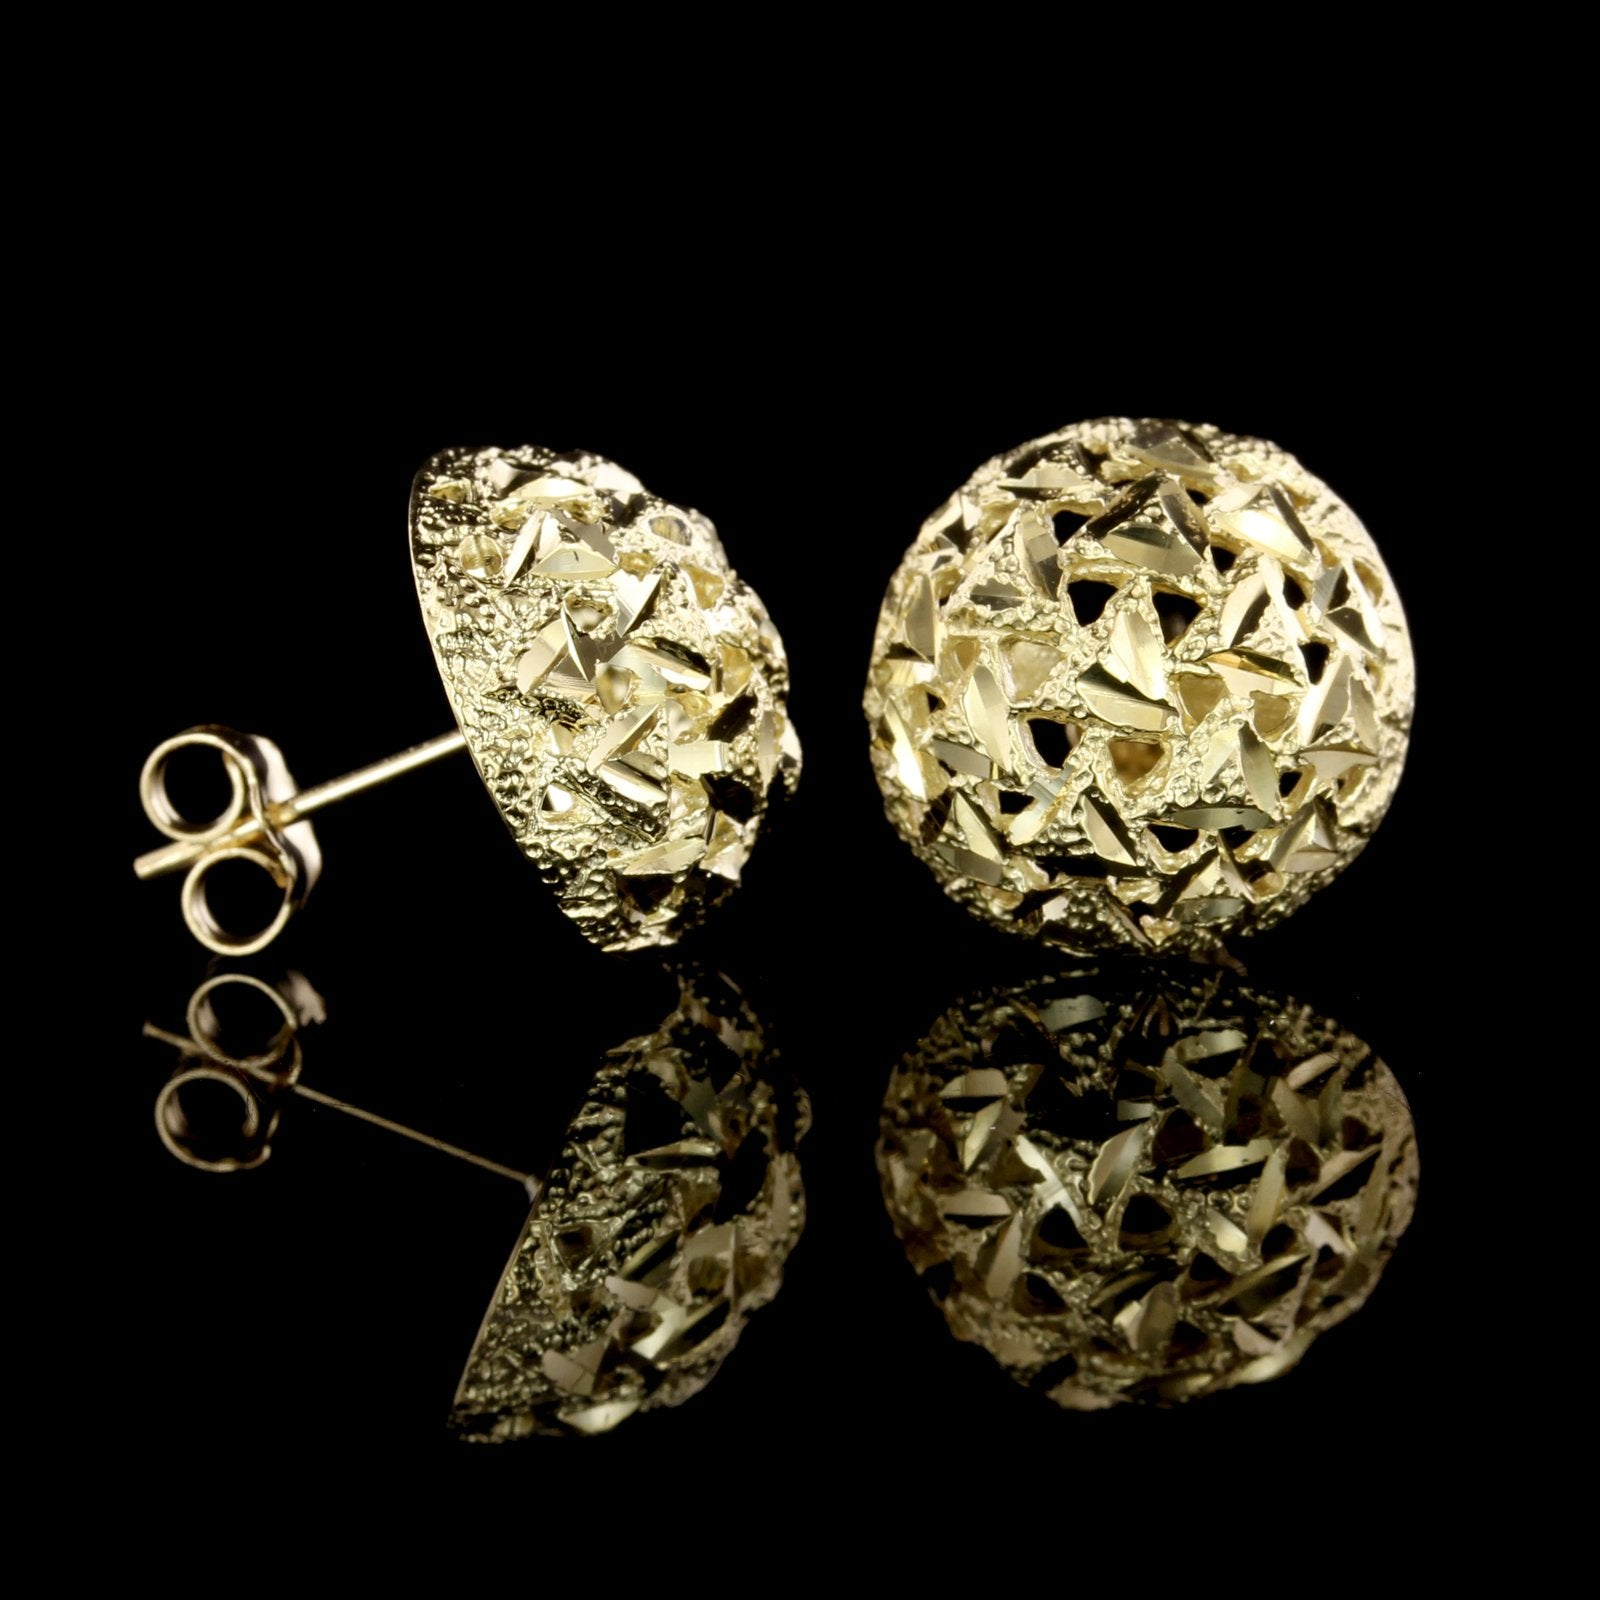 14K Yellow Gold Estate Filigree Dome Earrings